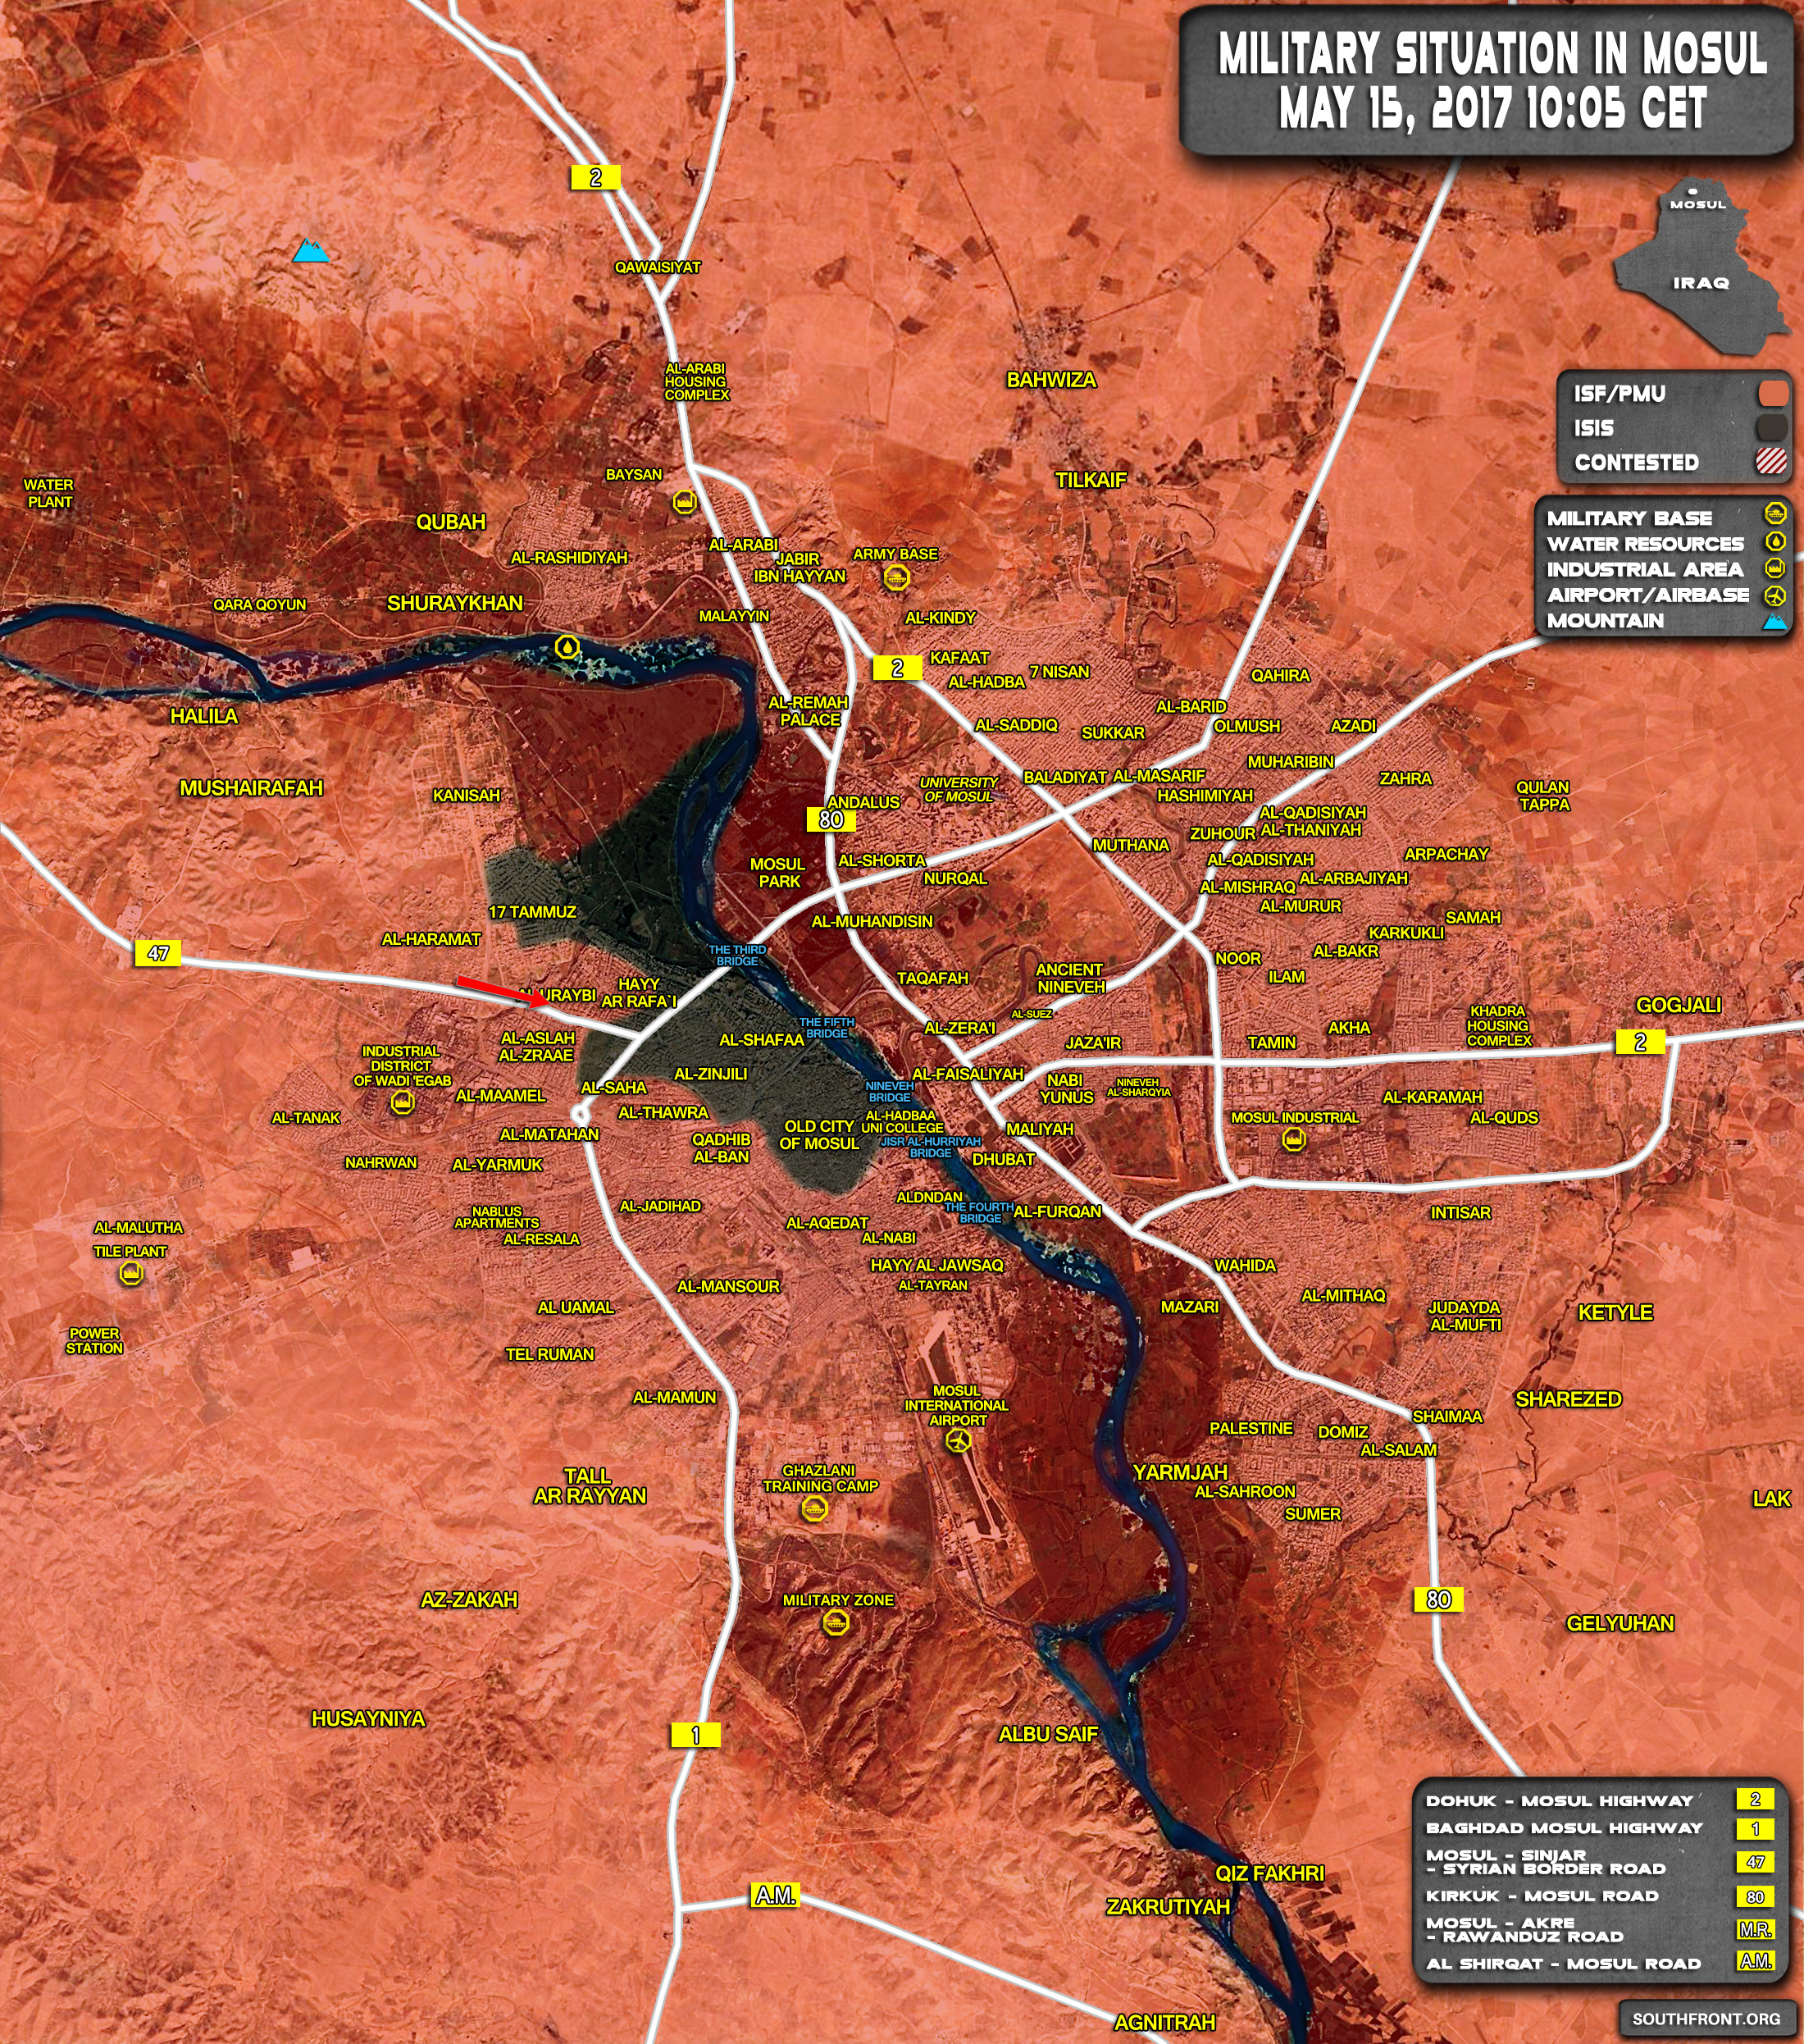 Military Situation In Iraqi City Of Mosul On May 15, 2017 (Map Update)